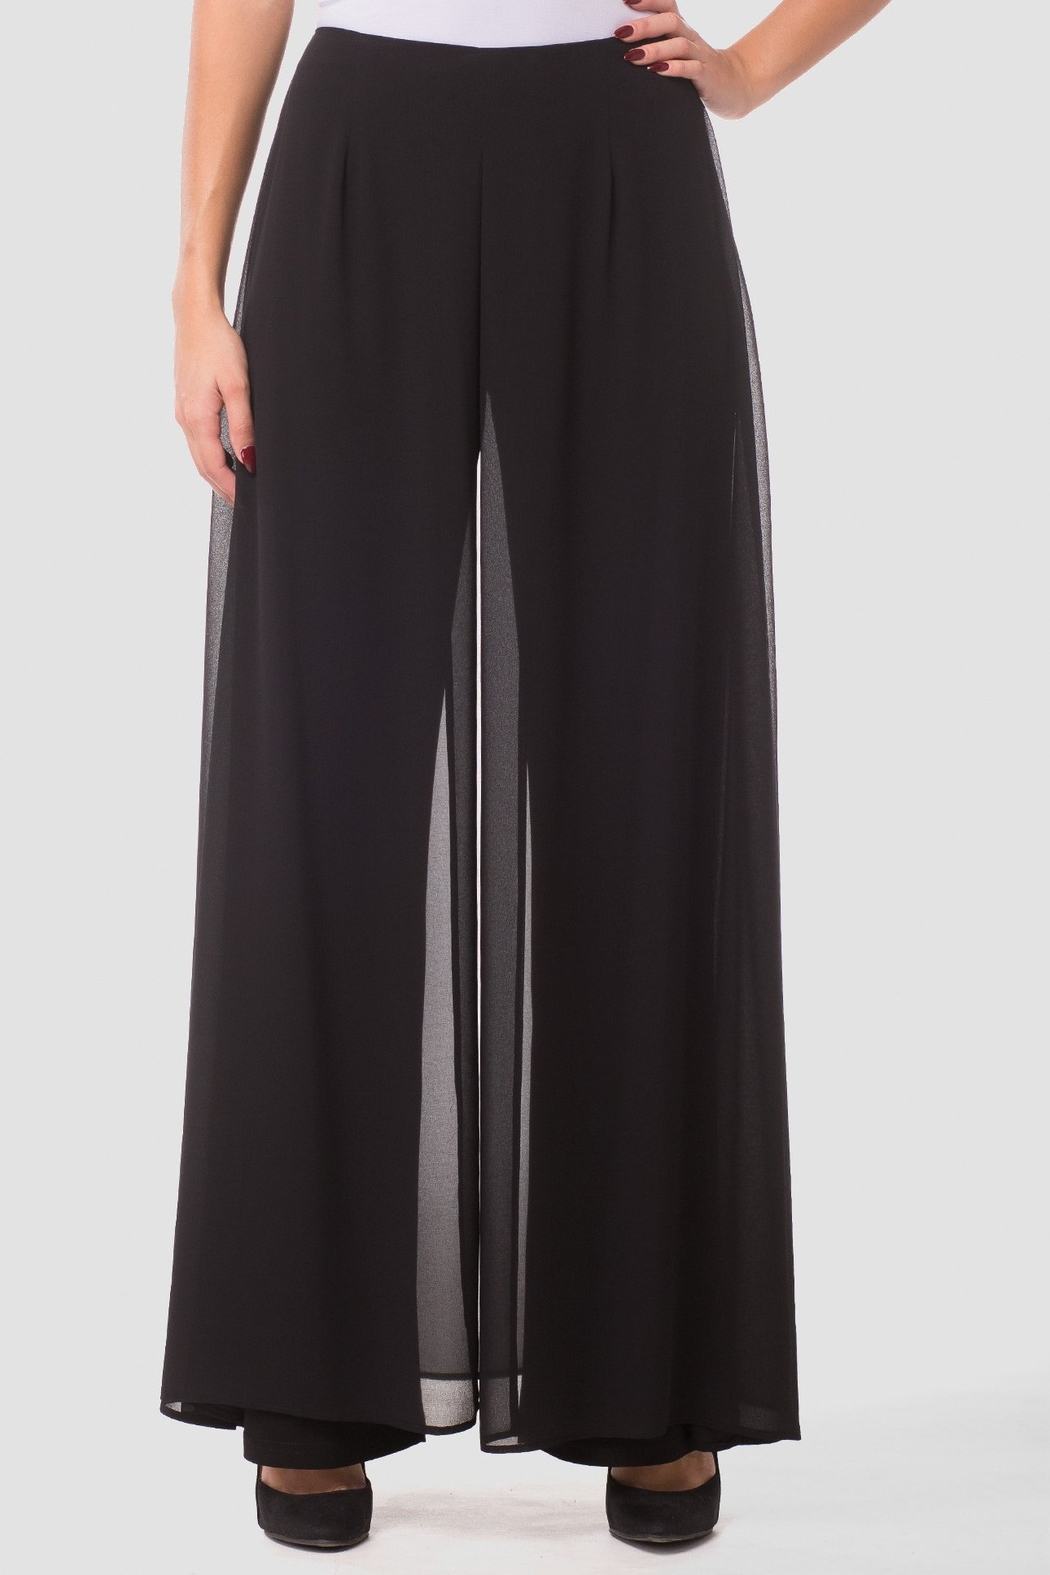 Joseph Ribkoff  Go with the Flow Wide Leg Pants - Front Full Image